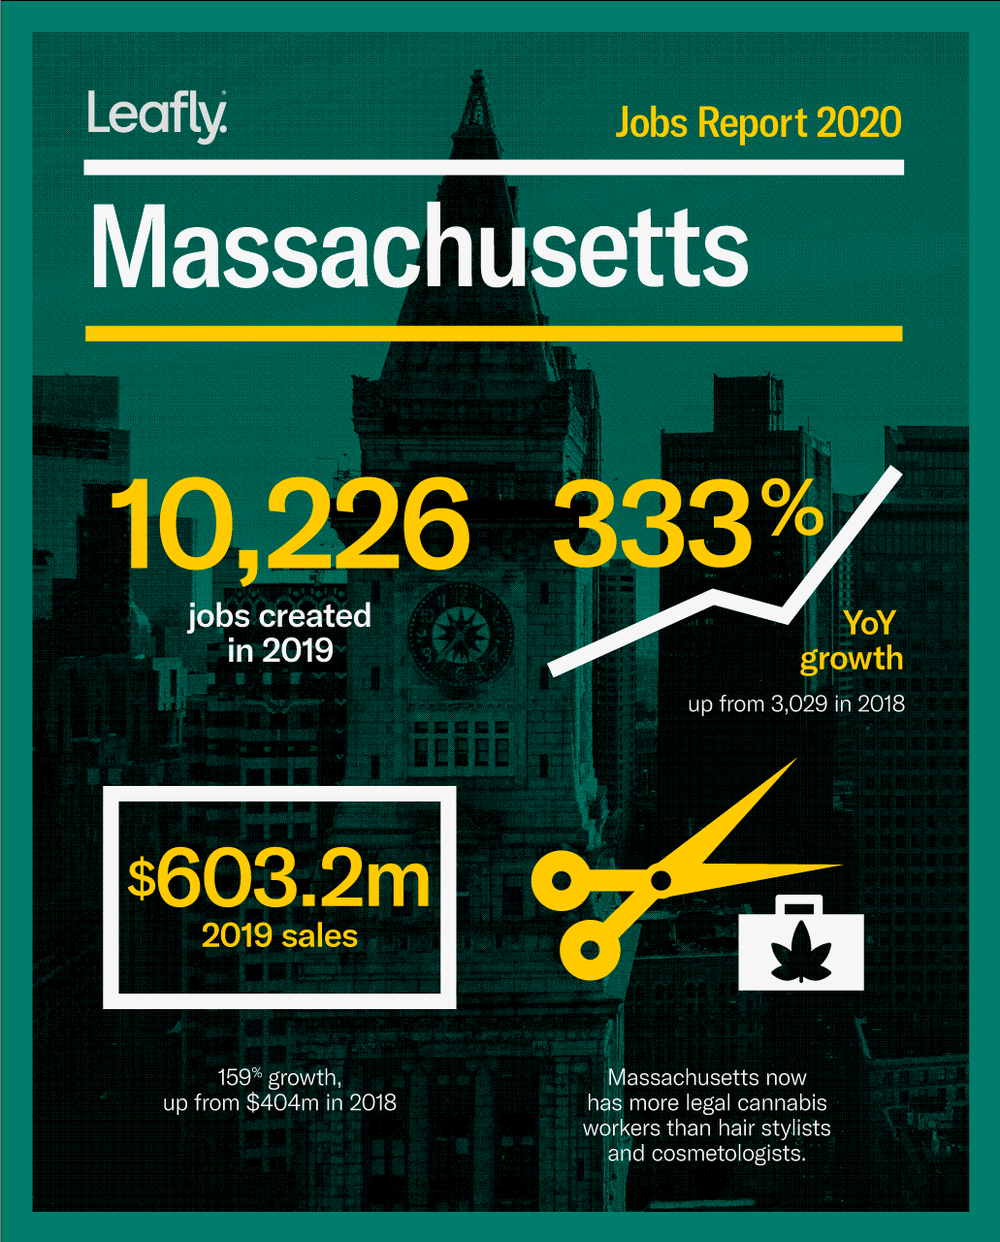 Leafly's 2020 Jobs Report breaks down sales and jobs in Massachusetts.